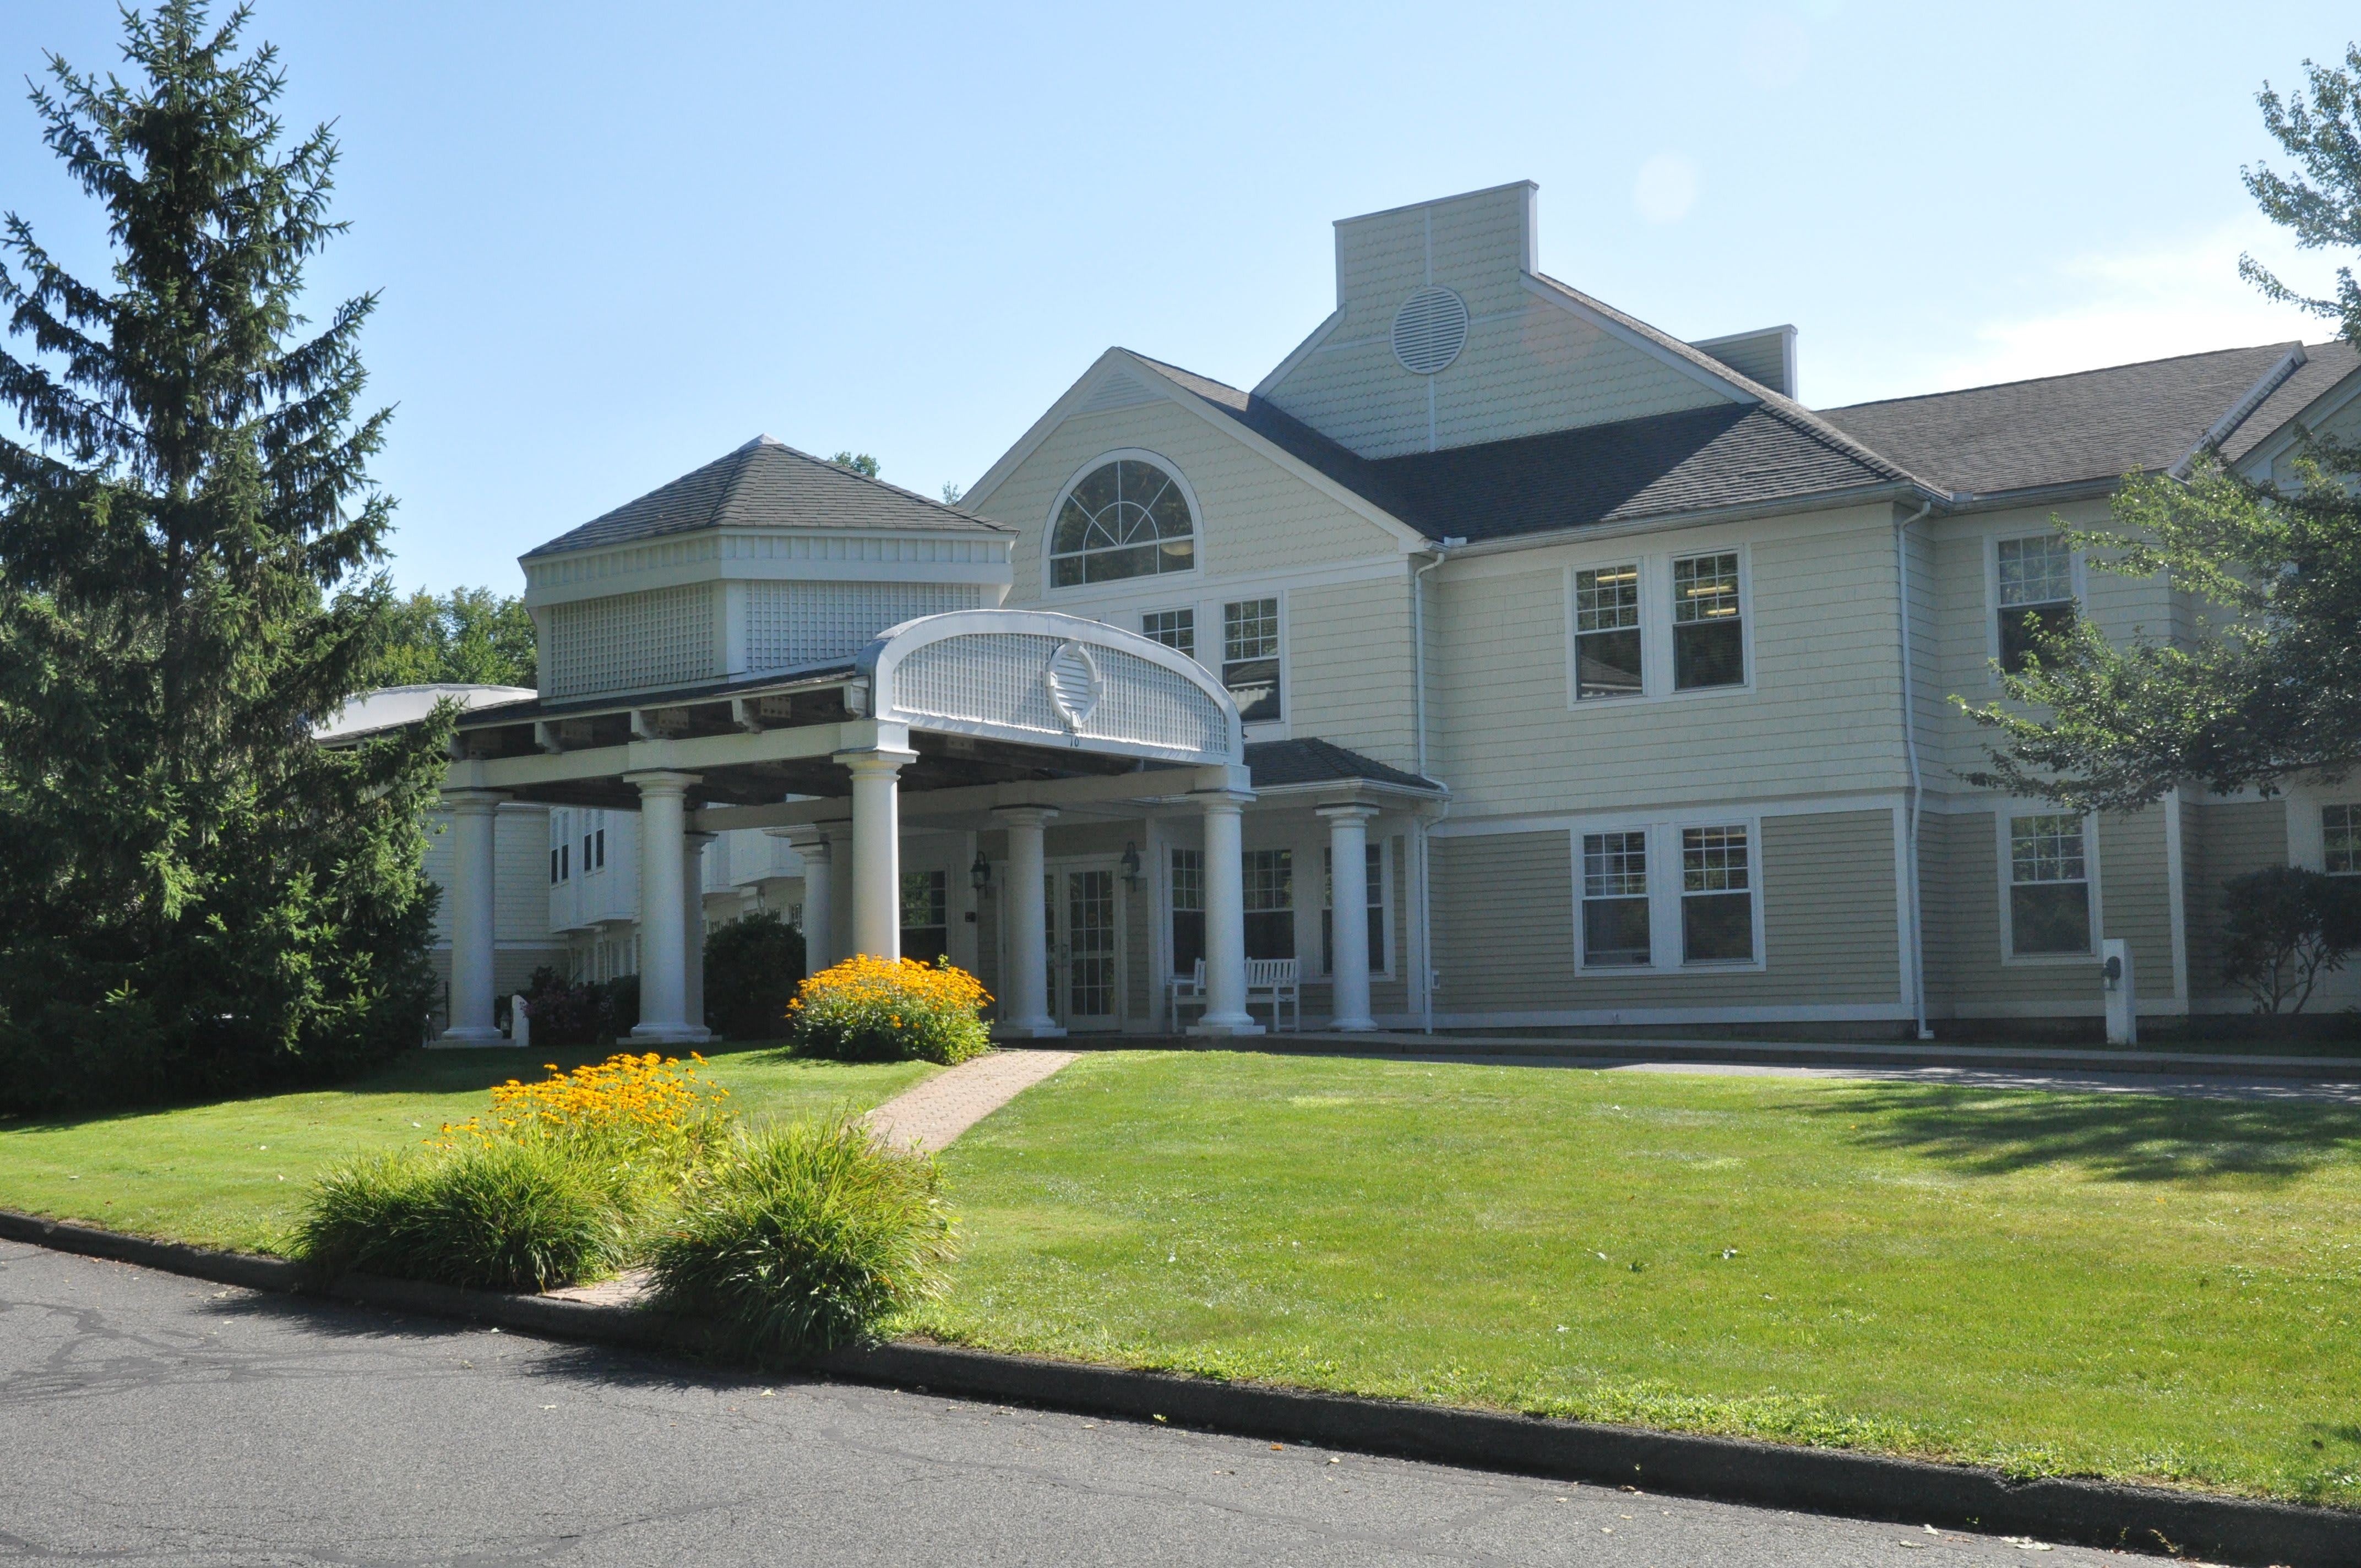 Photo 1 of The Arbors at Amherst